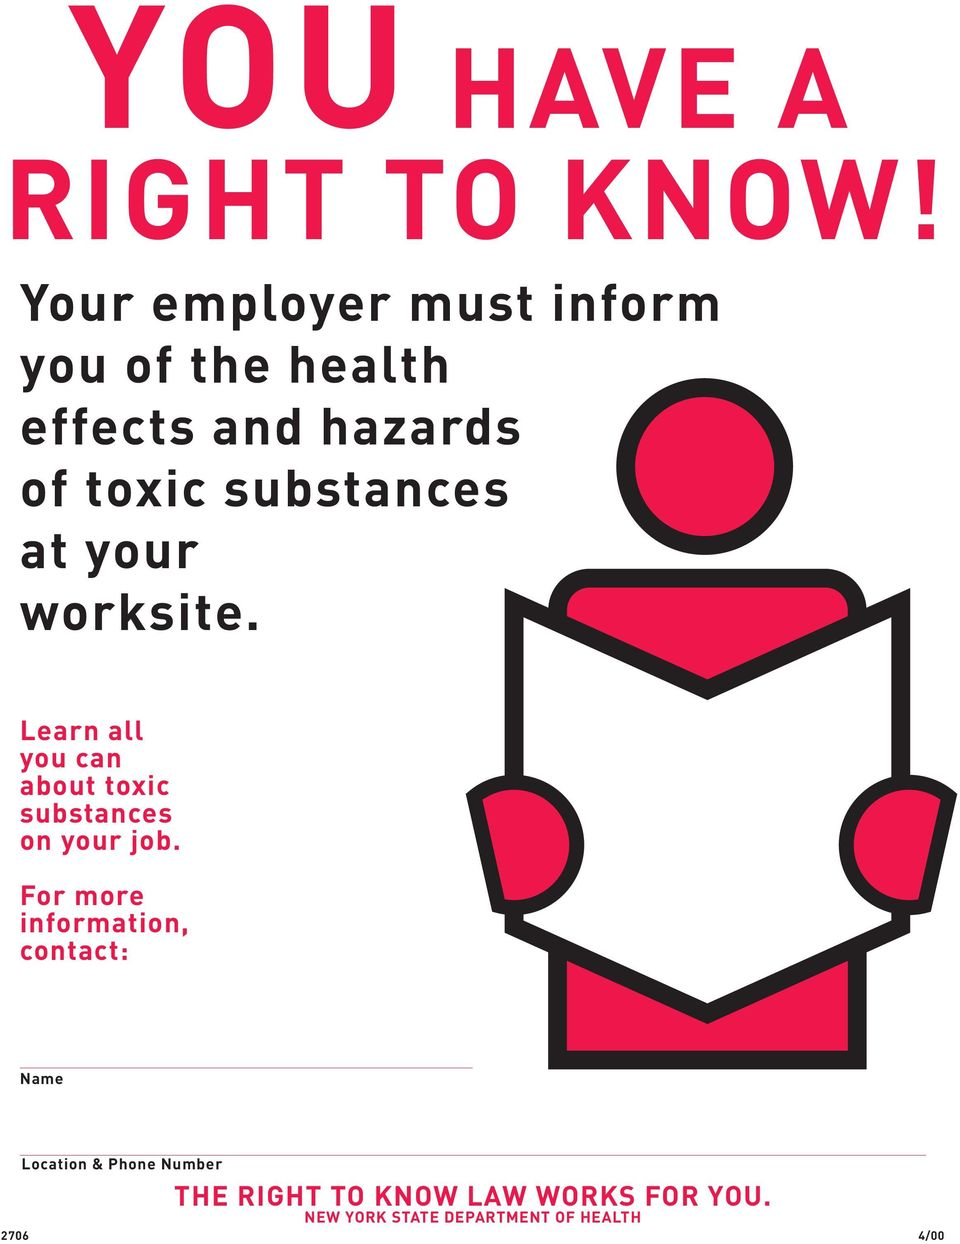 substances at your worksite.